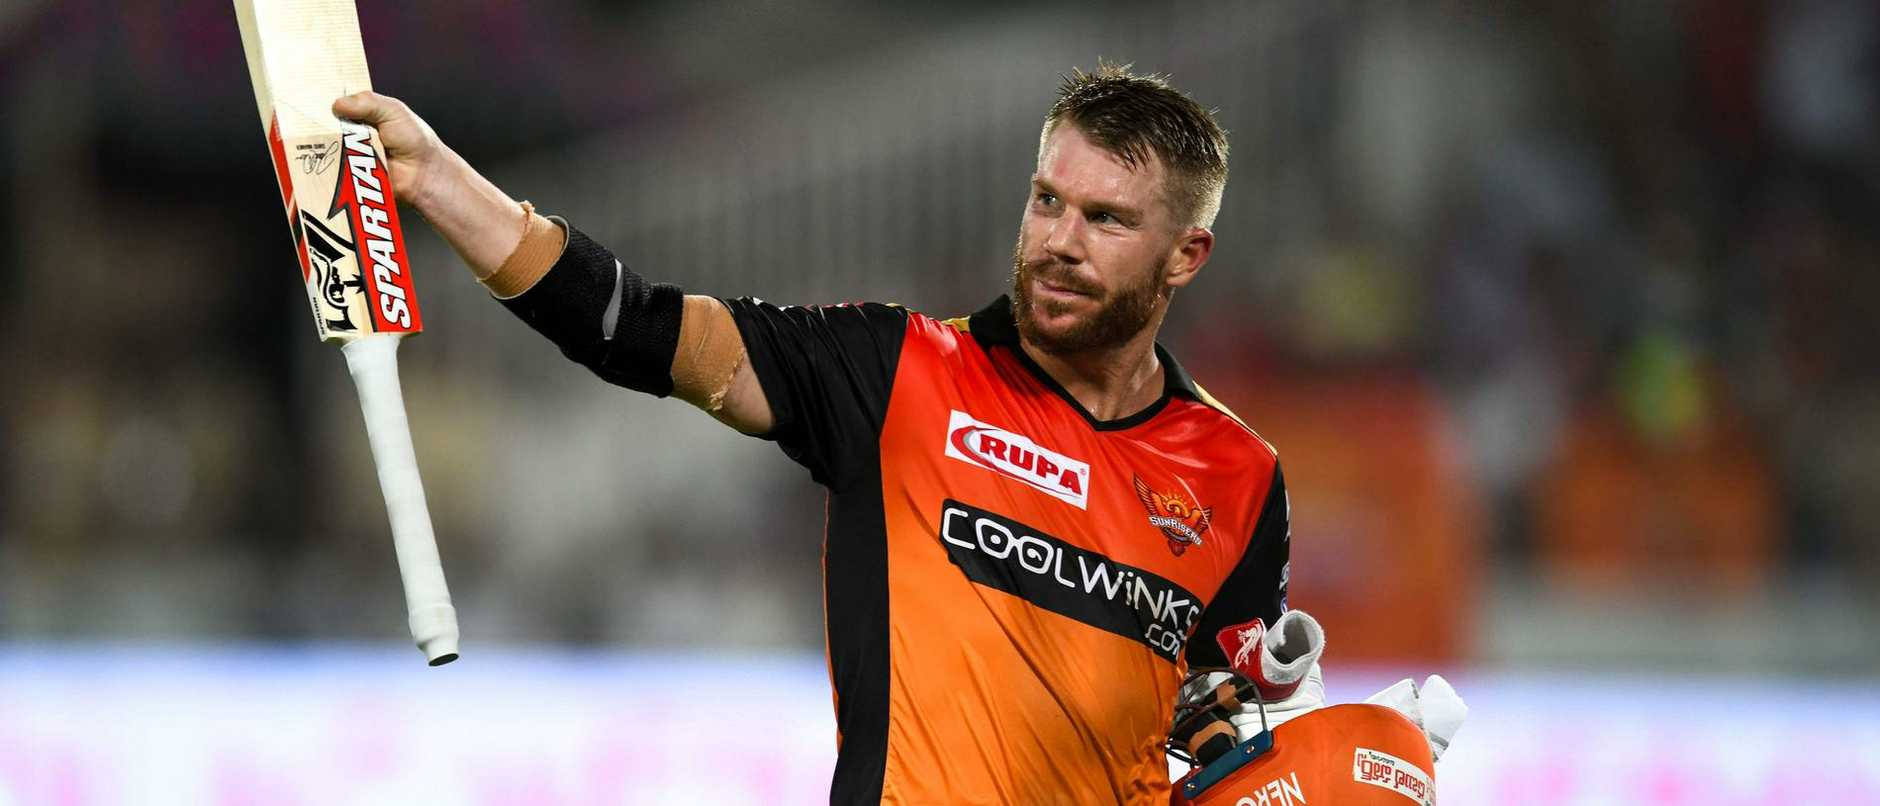 Australian cricket stars likely to receive COVID vaccine ahead of Indian Premier League tournament